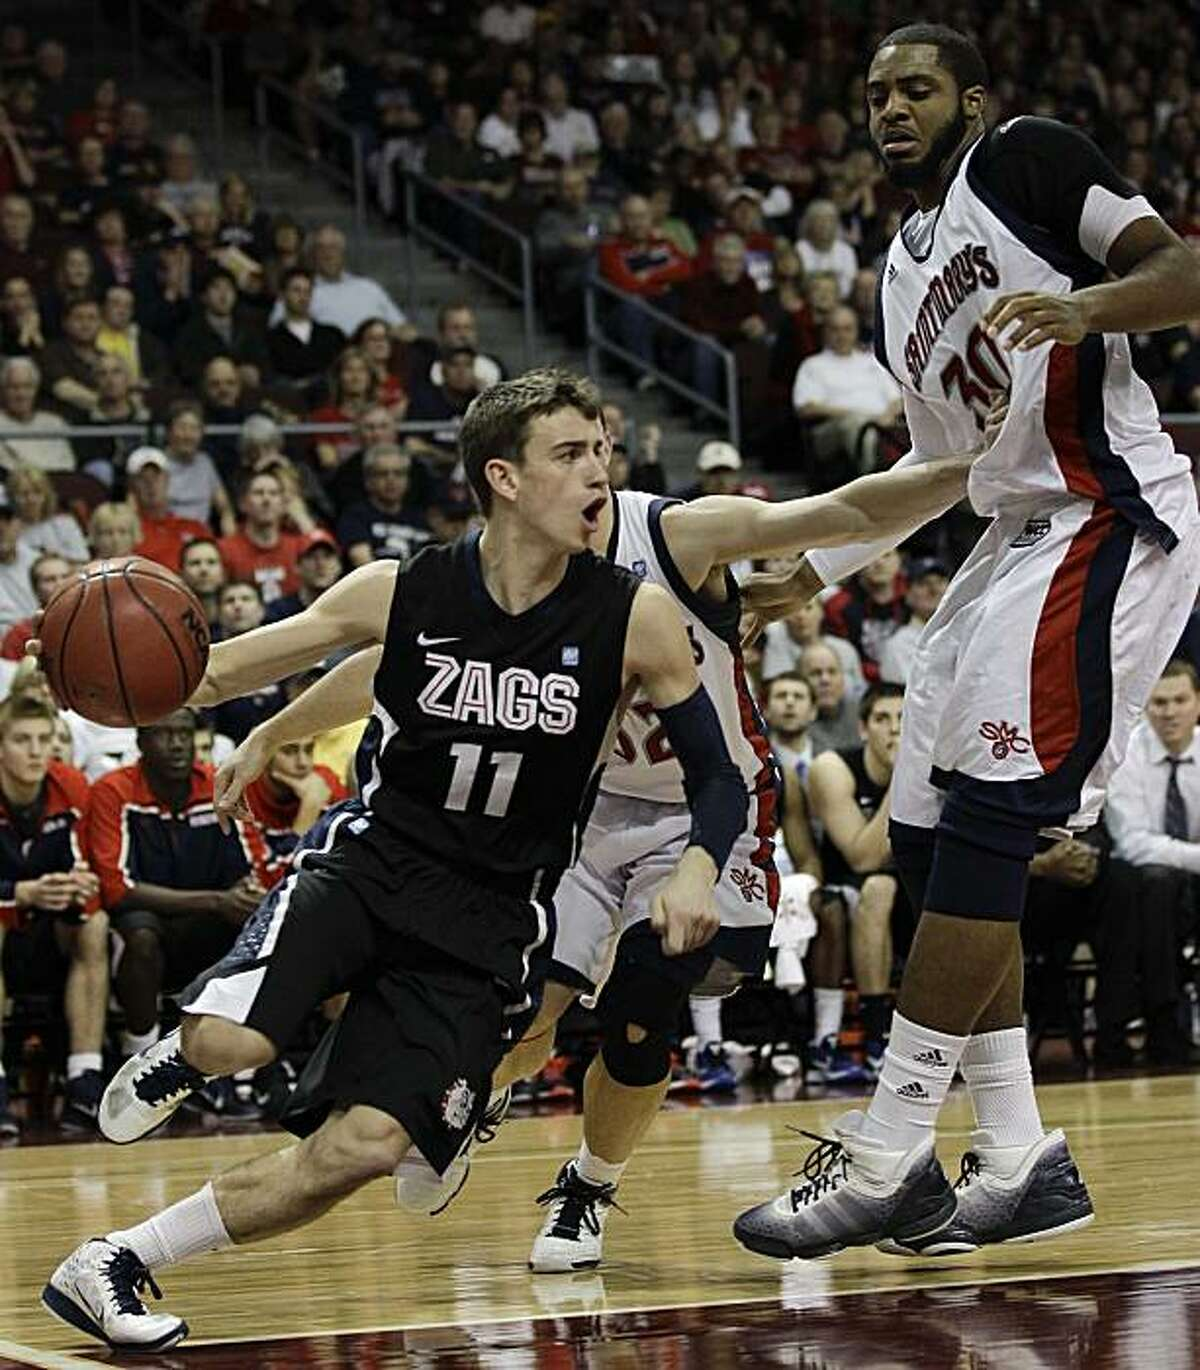 Gonzaga's David Stockton (11) drives past Saint Mary's Kenton Walker II in teh second half during the championship game of the West Coast Conference college basketball tournament, Monday, March 7, 2011, in Las Vegas. Gonzaga won 75-63.